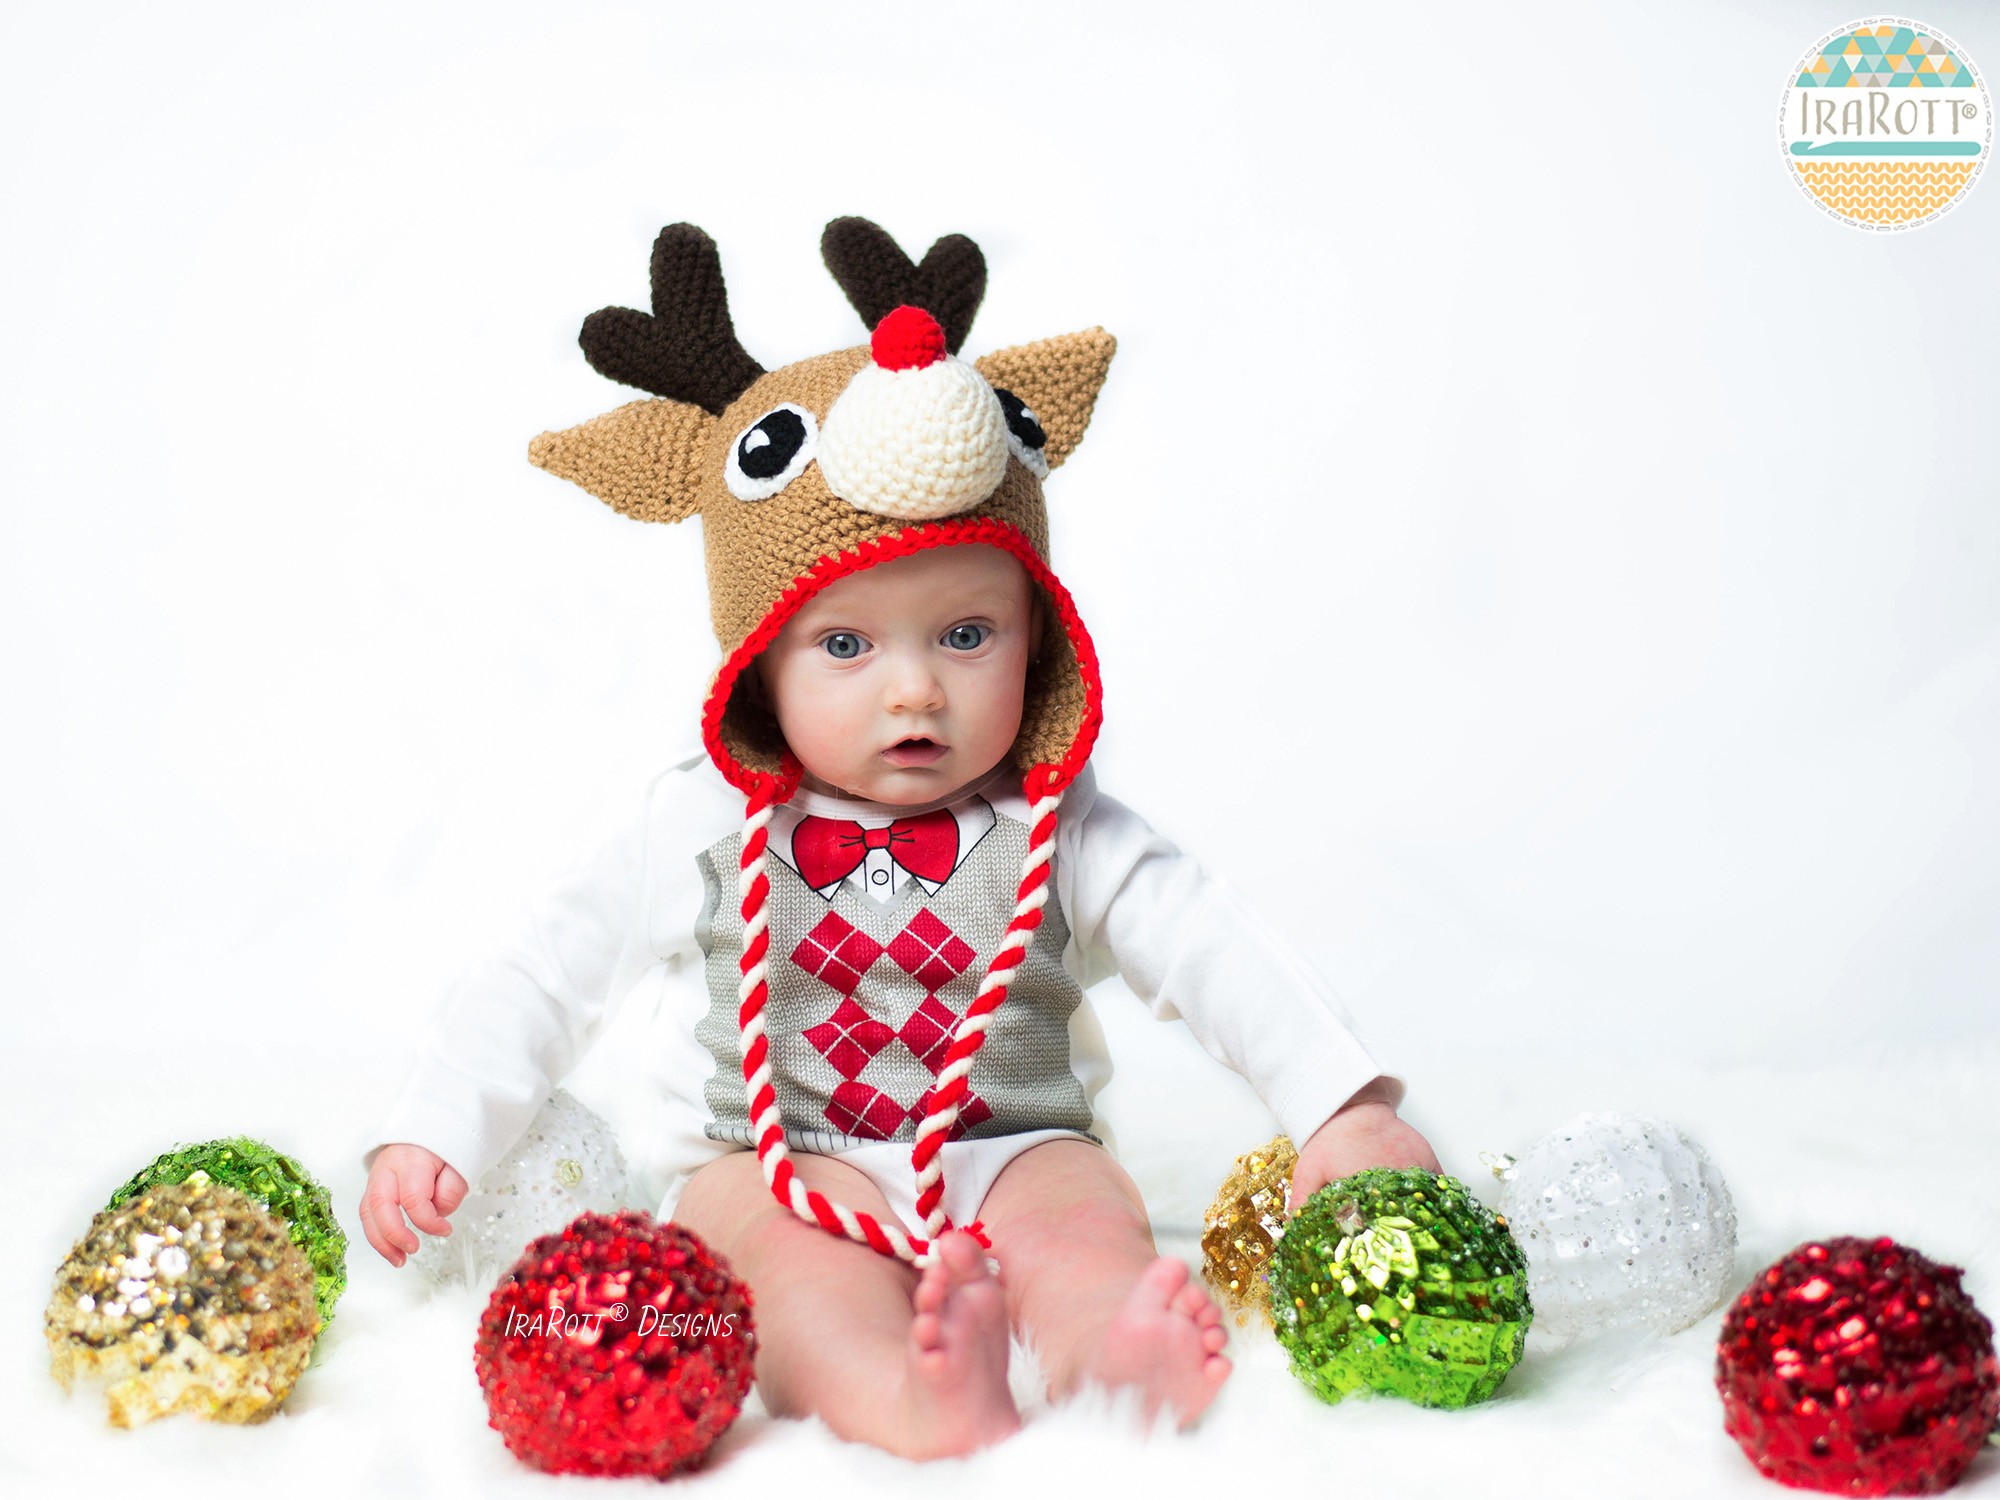 Free Crochet Patterns For Reindeer Hats : Blizzard the Reindeer Hat Crochet Pattern PDF - IraRott Inc.